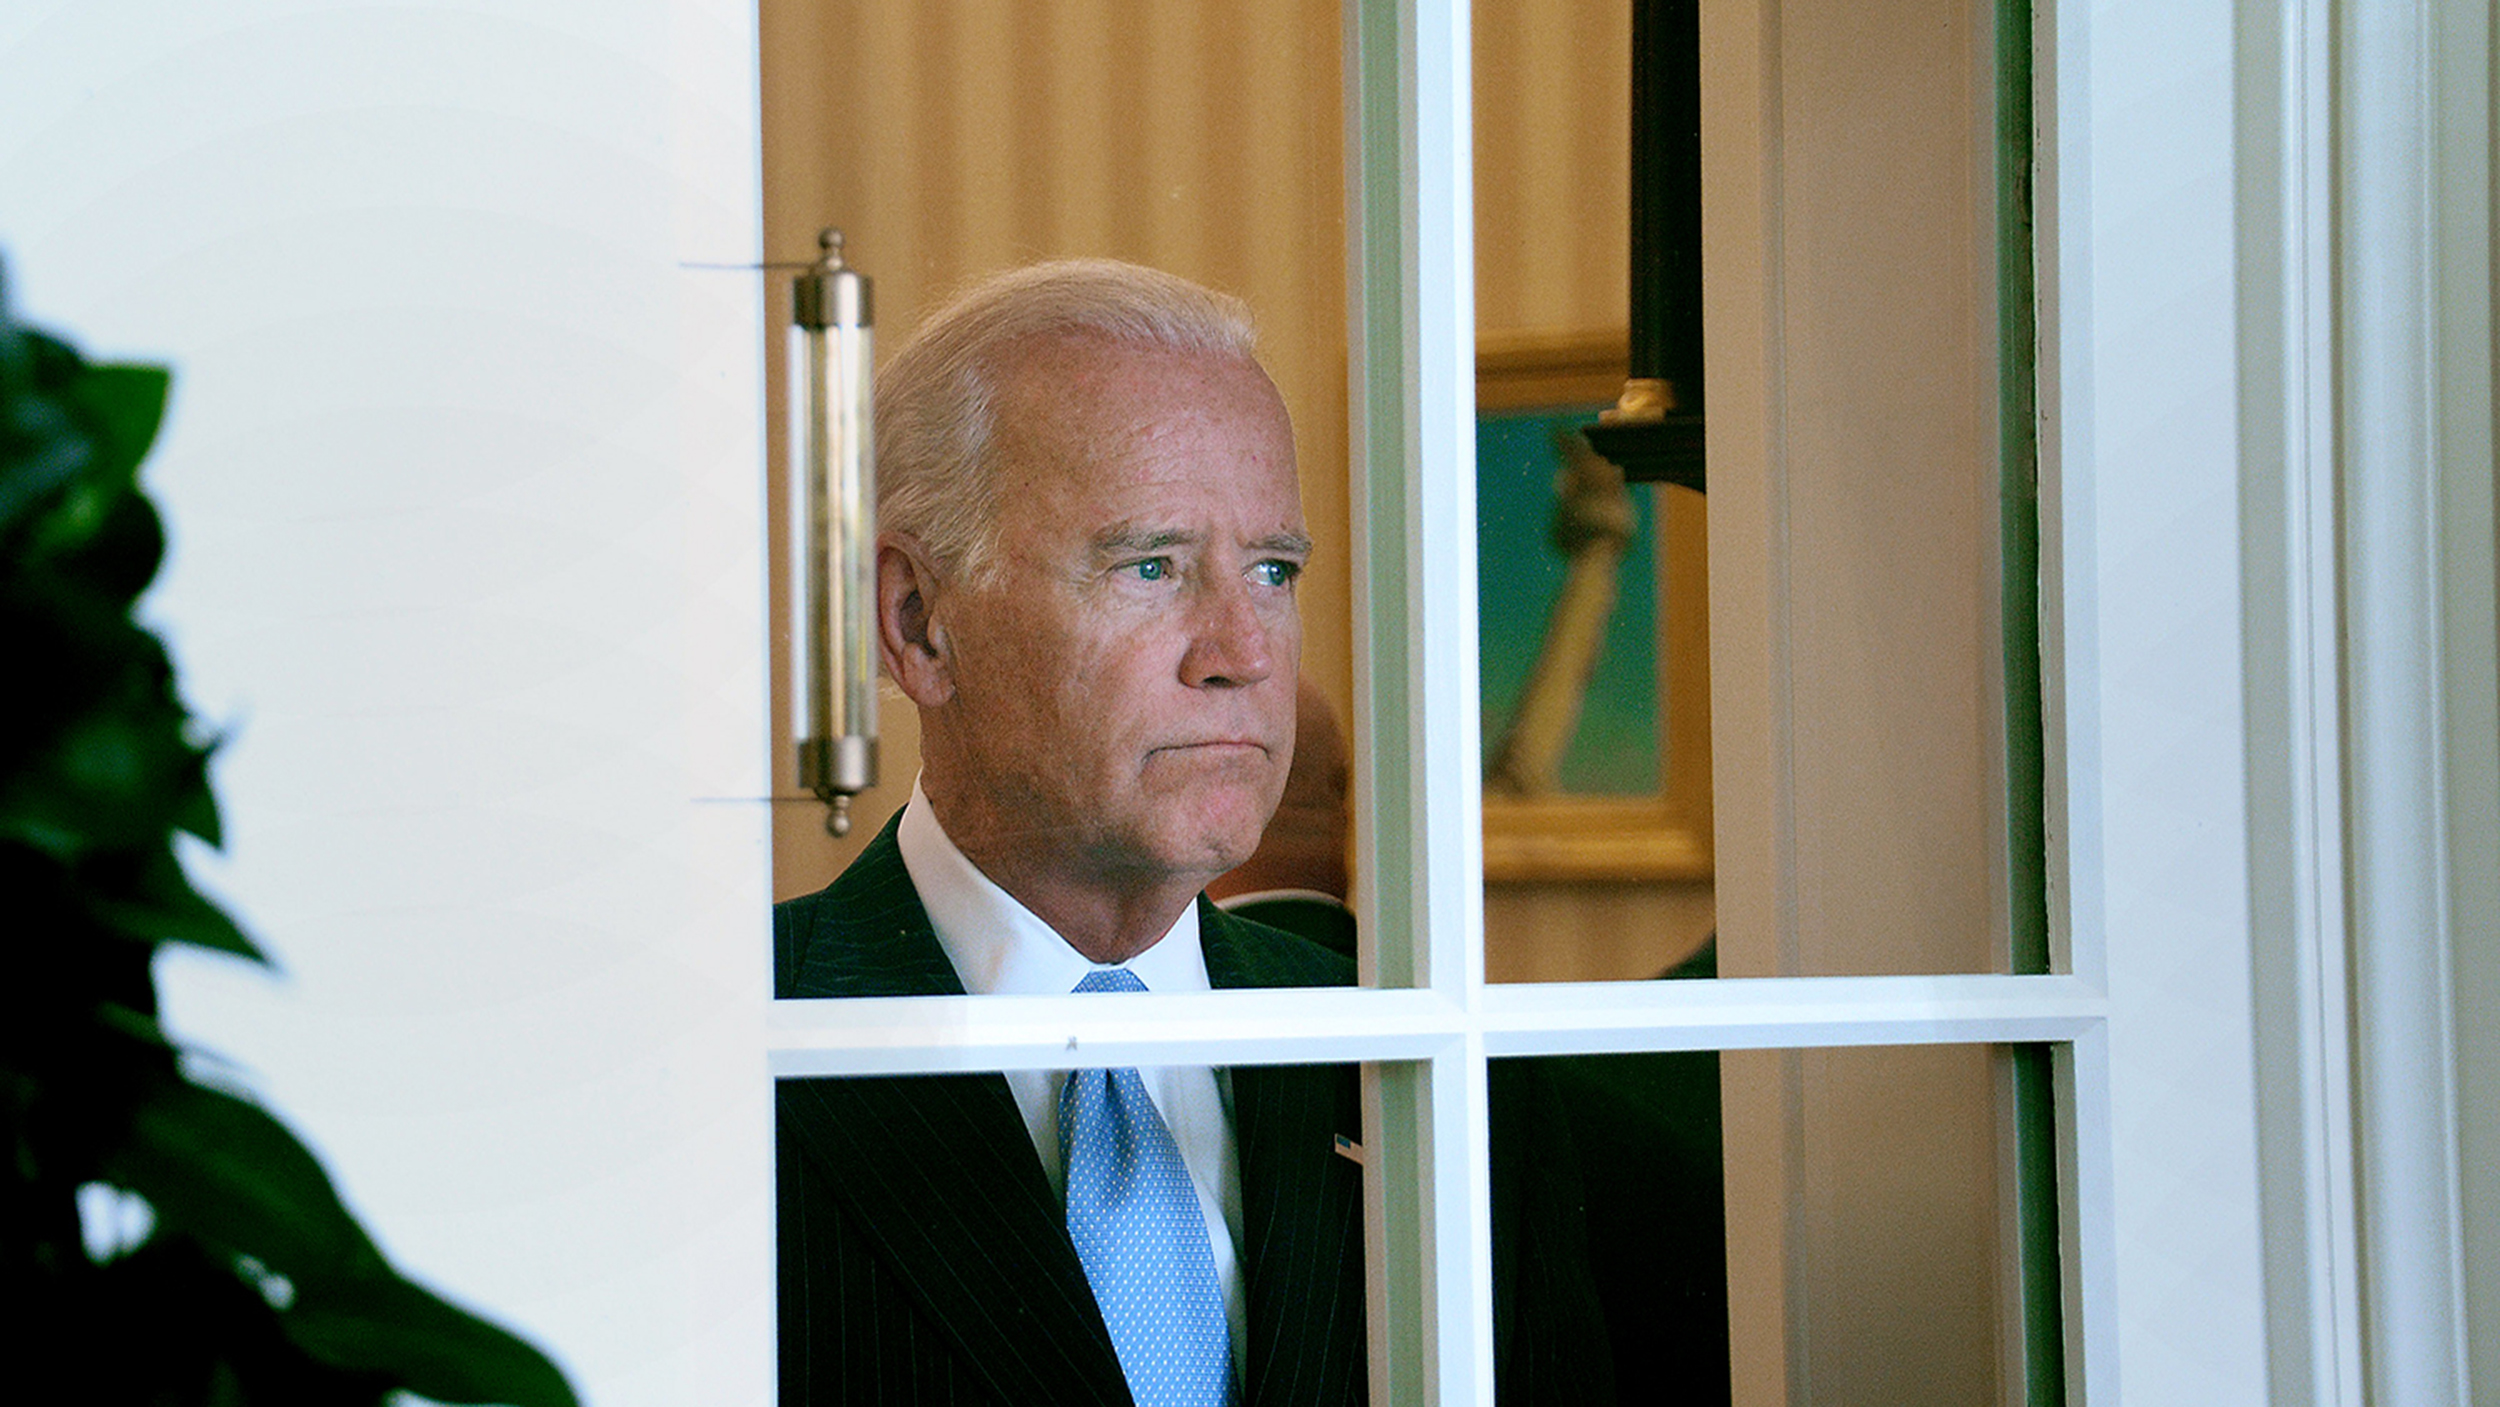 Biden:  And here I thought I had had my one betrayal and attempted murder for this year.